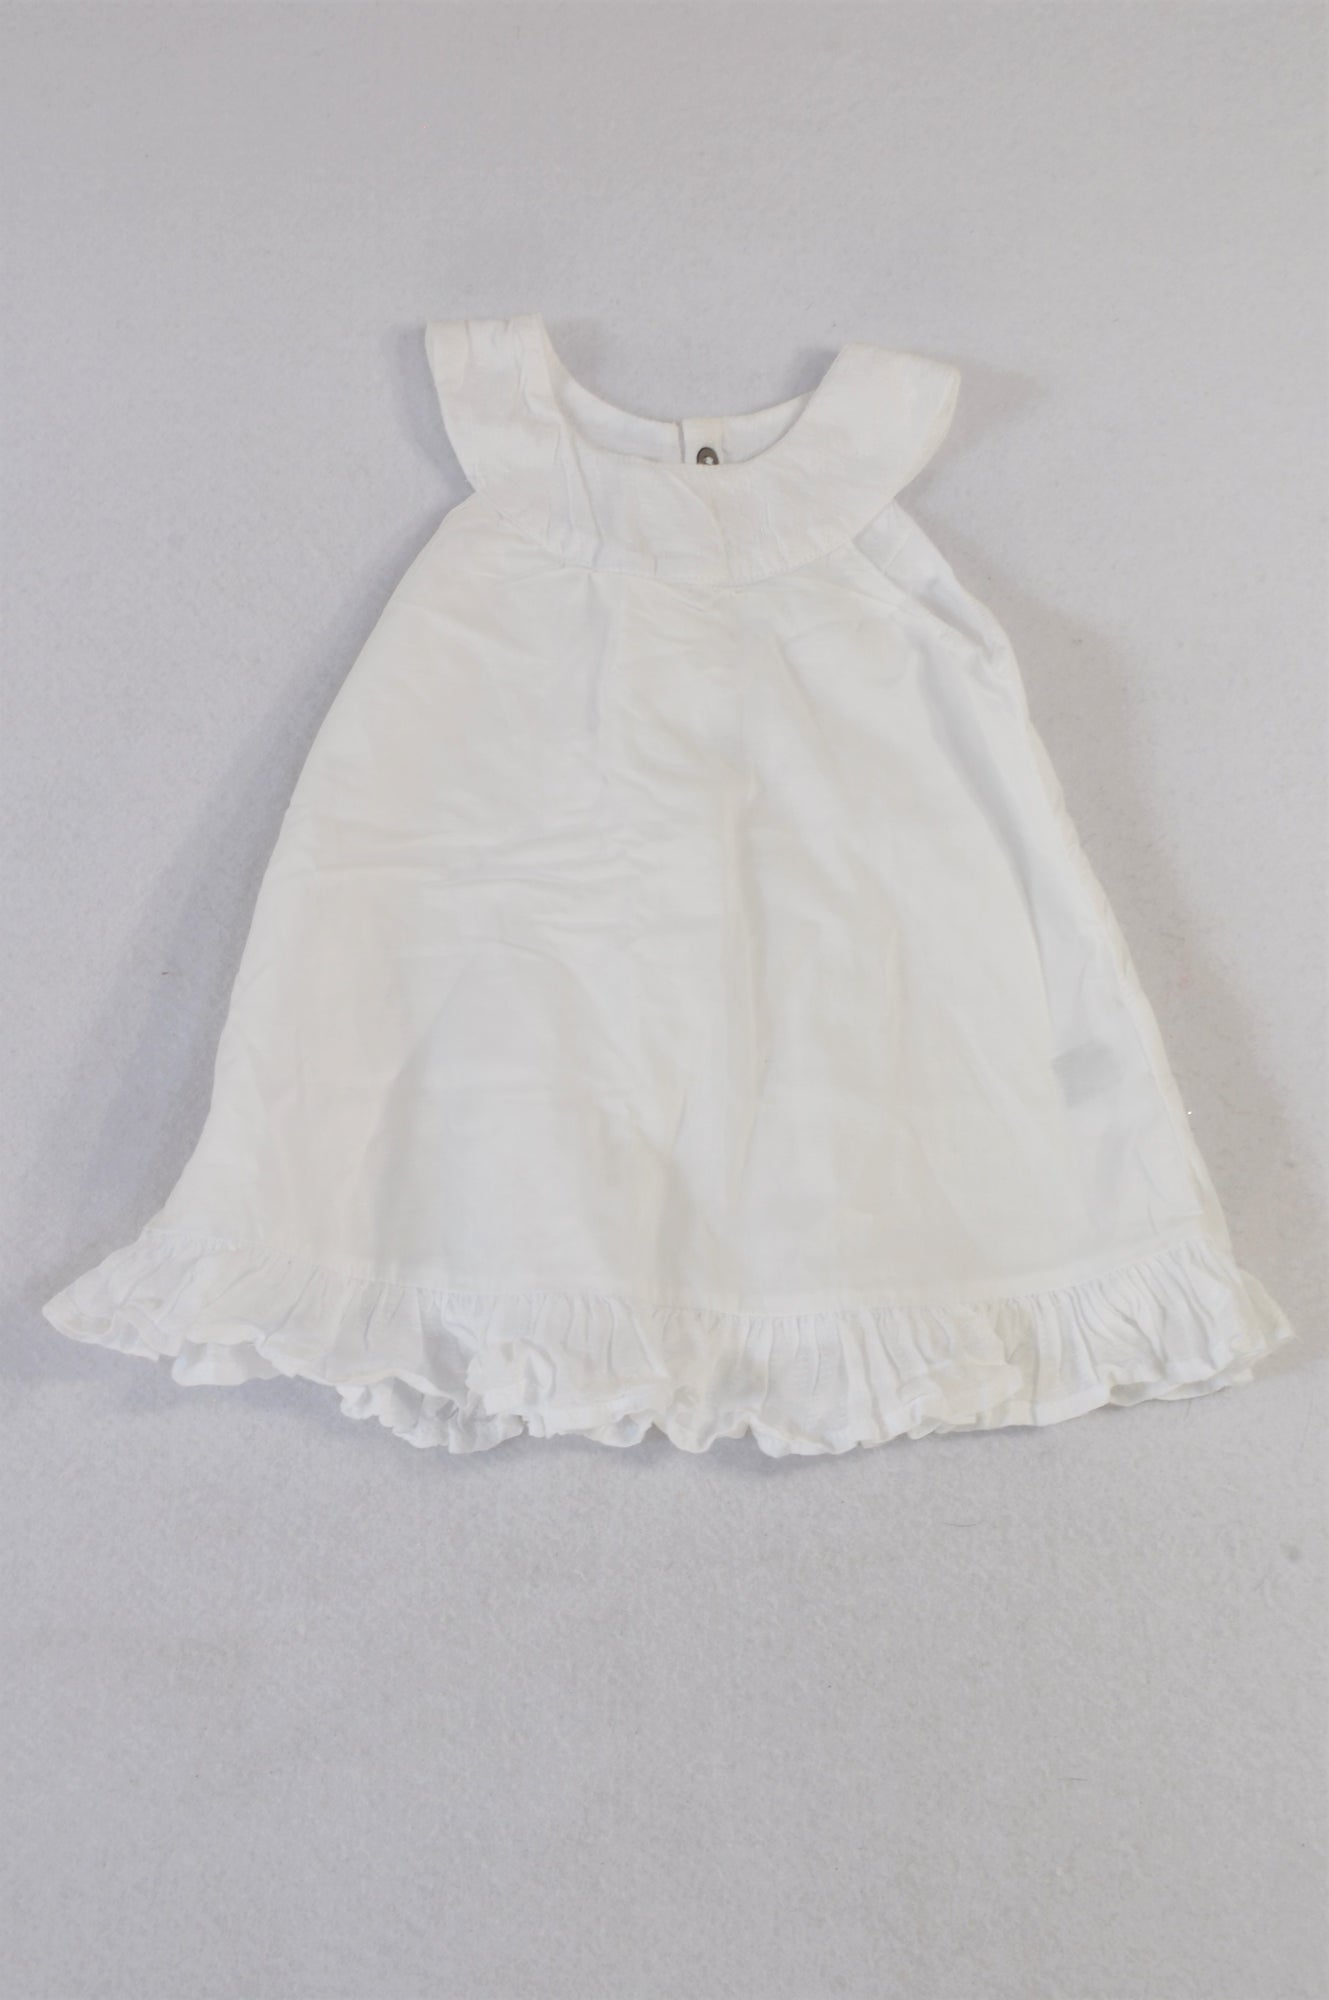 Woolworths White Frill Lightweight Blouse Girls 0-3 months